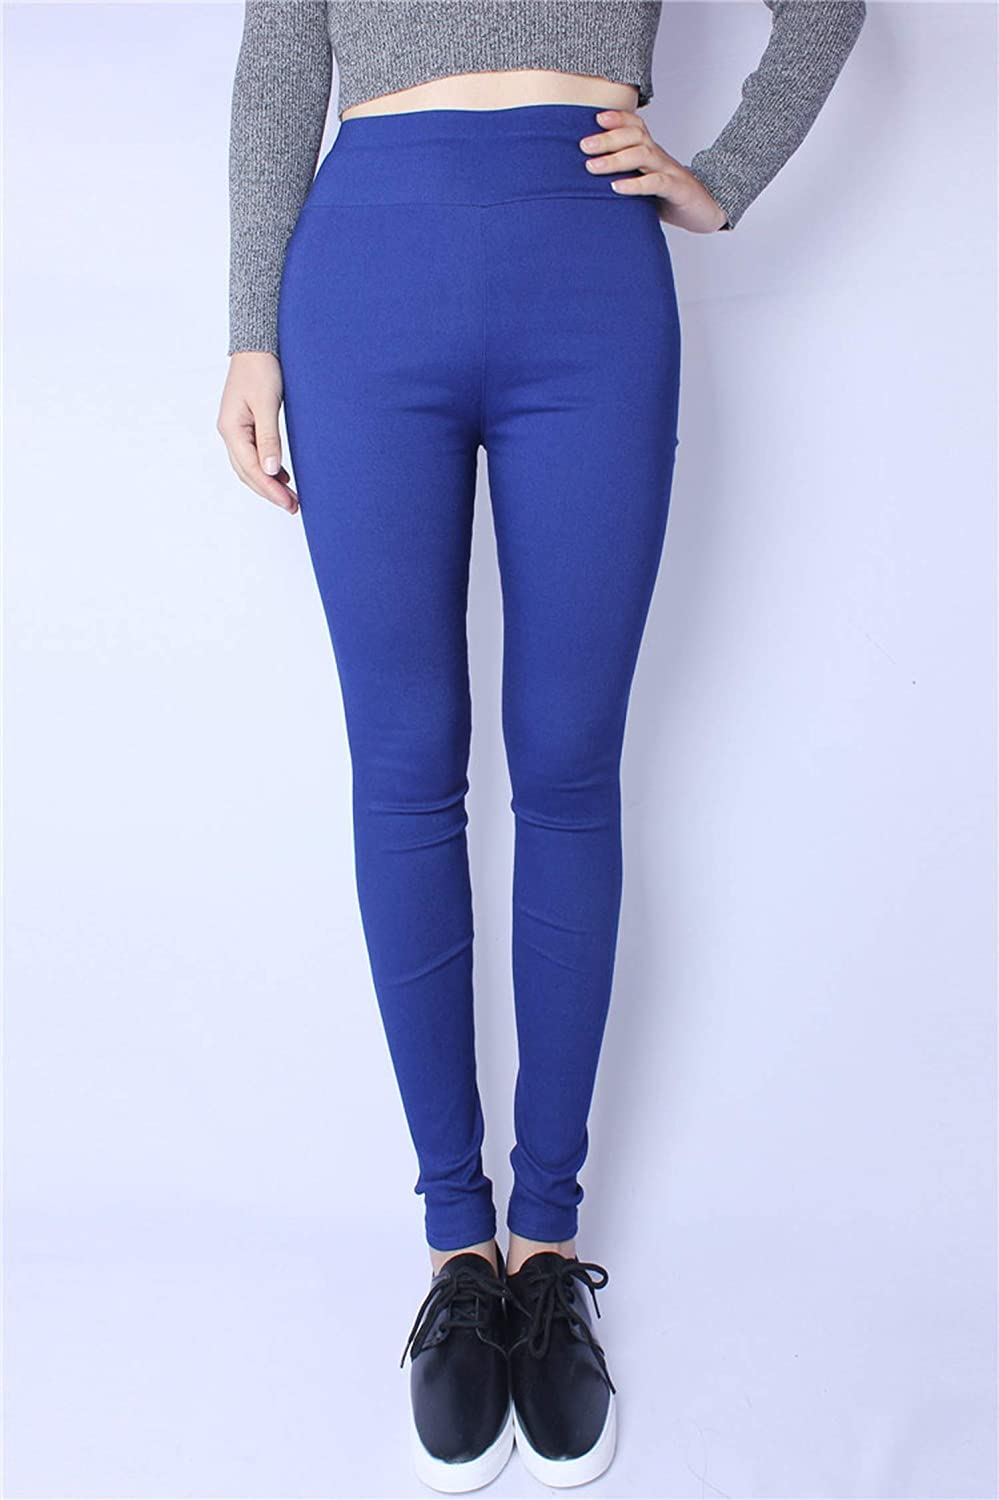 Genius-route-store Women Spring Pants Jeans Leggings Casual Elastic Pencil Pants